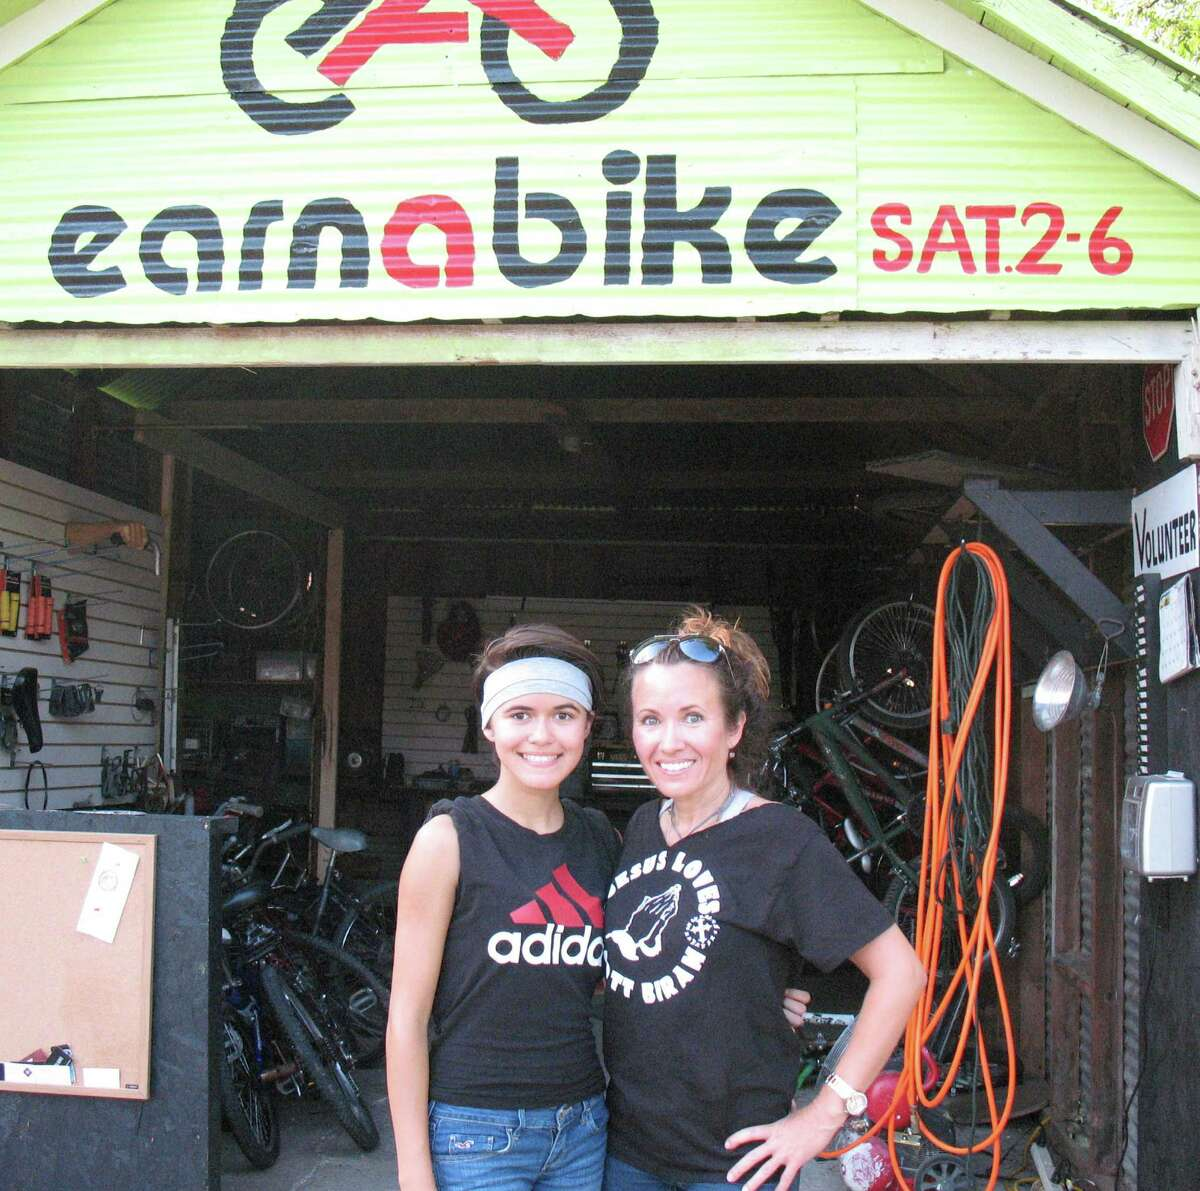 Lydia Boudreaux (right) earned a free bike by working at the Earn-A-Bike Co-op. Her daughter, Jelly, is working to earn her own bike.